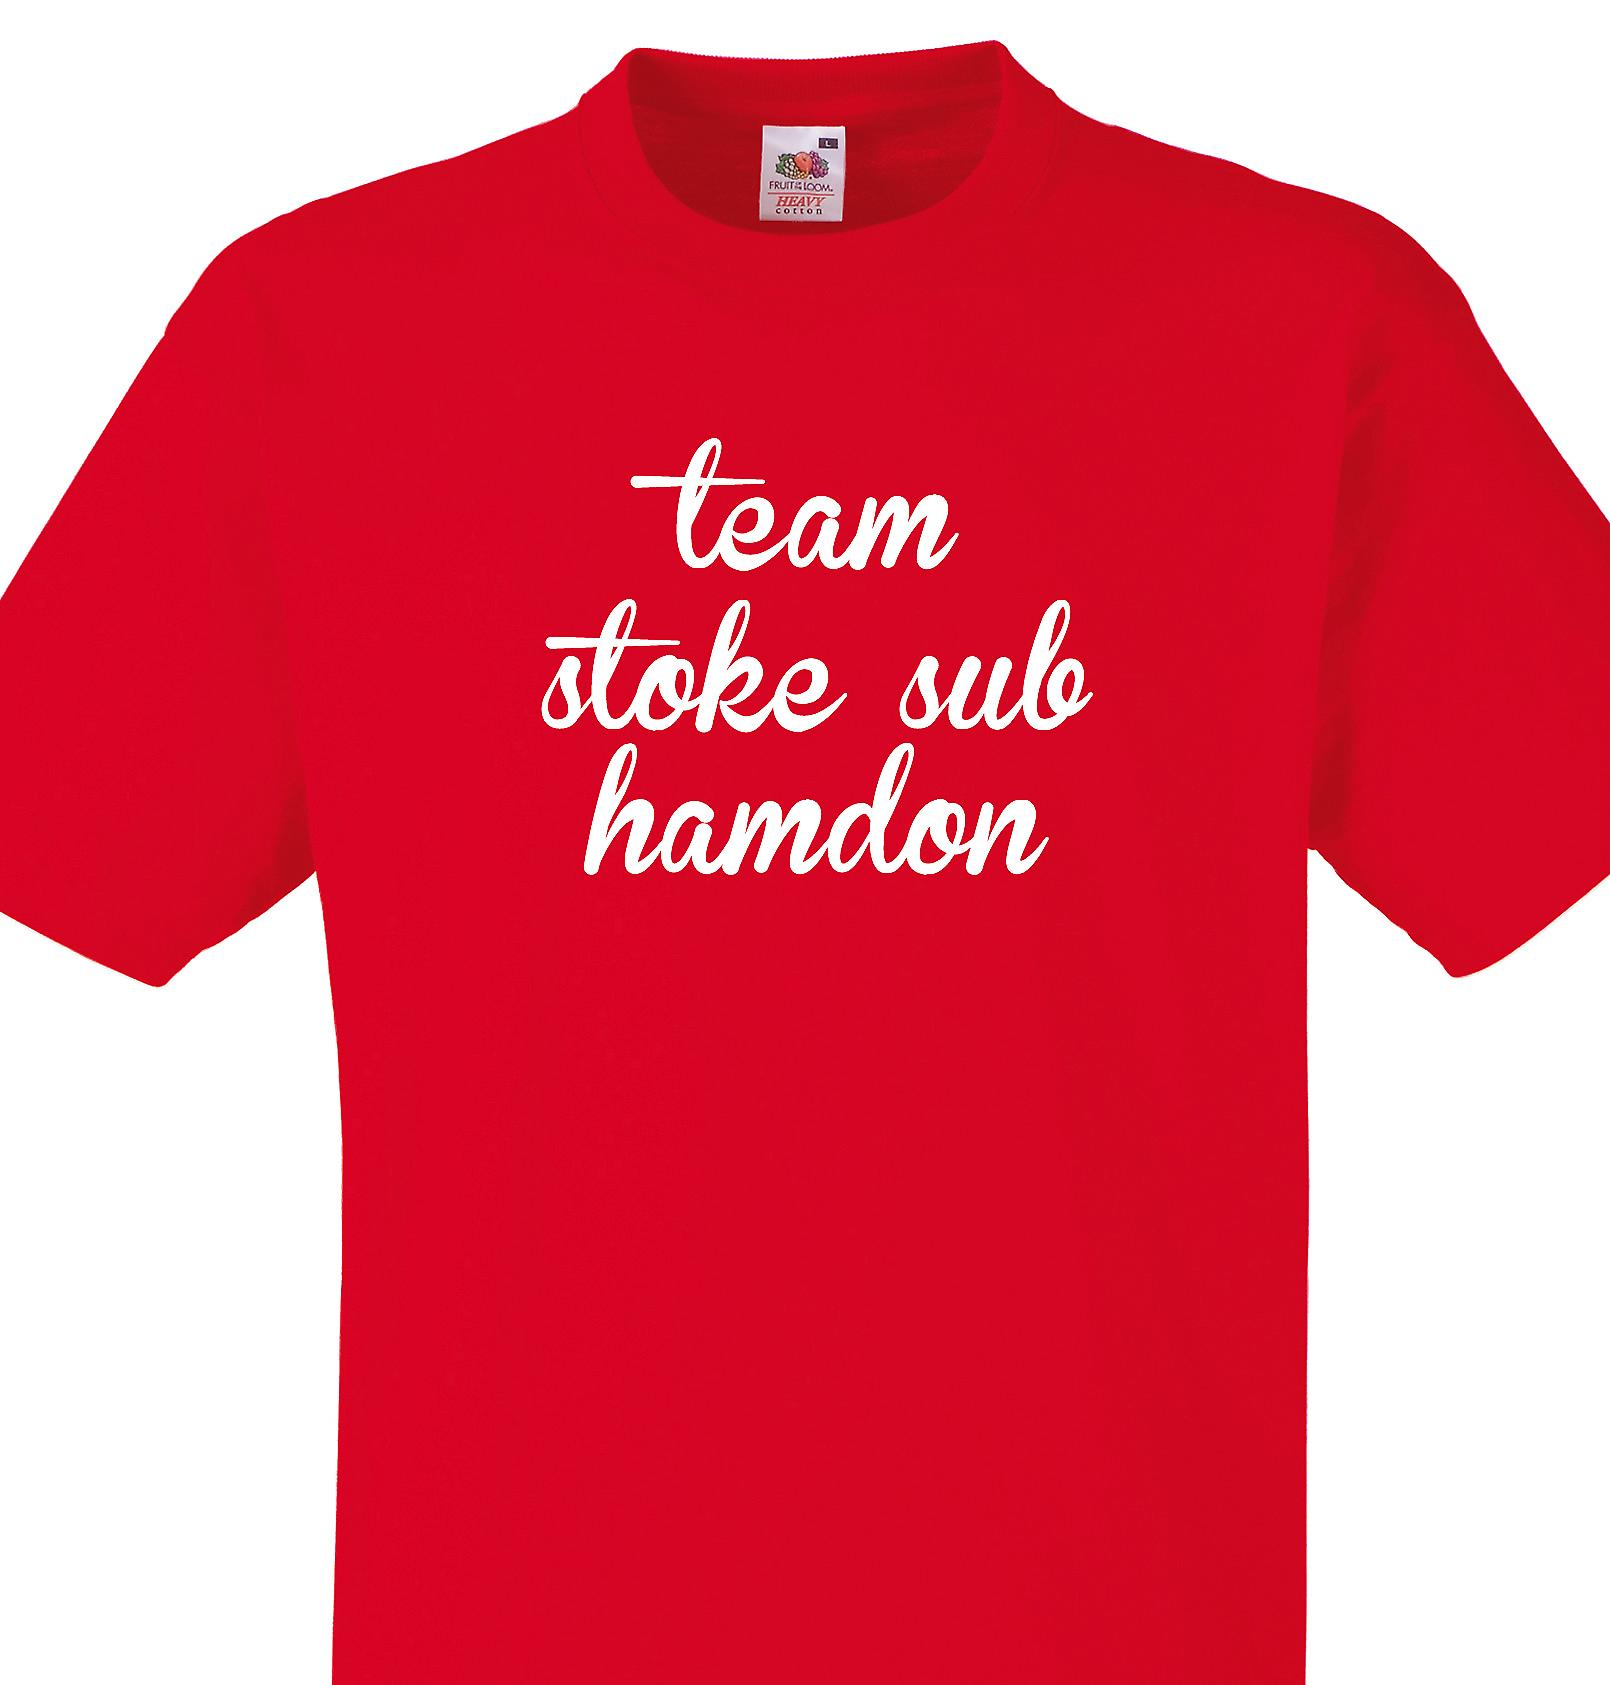 Team Stoke sub hamdon Red T shirt